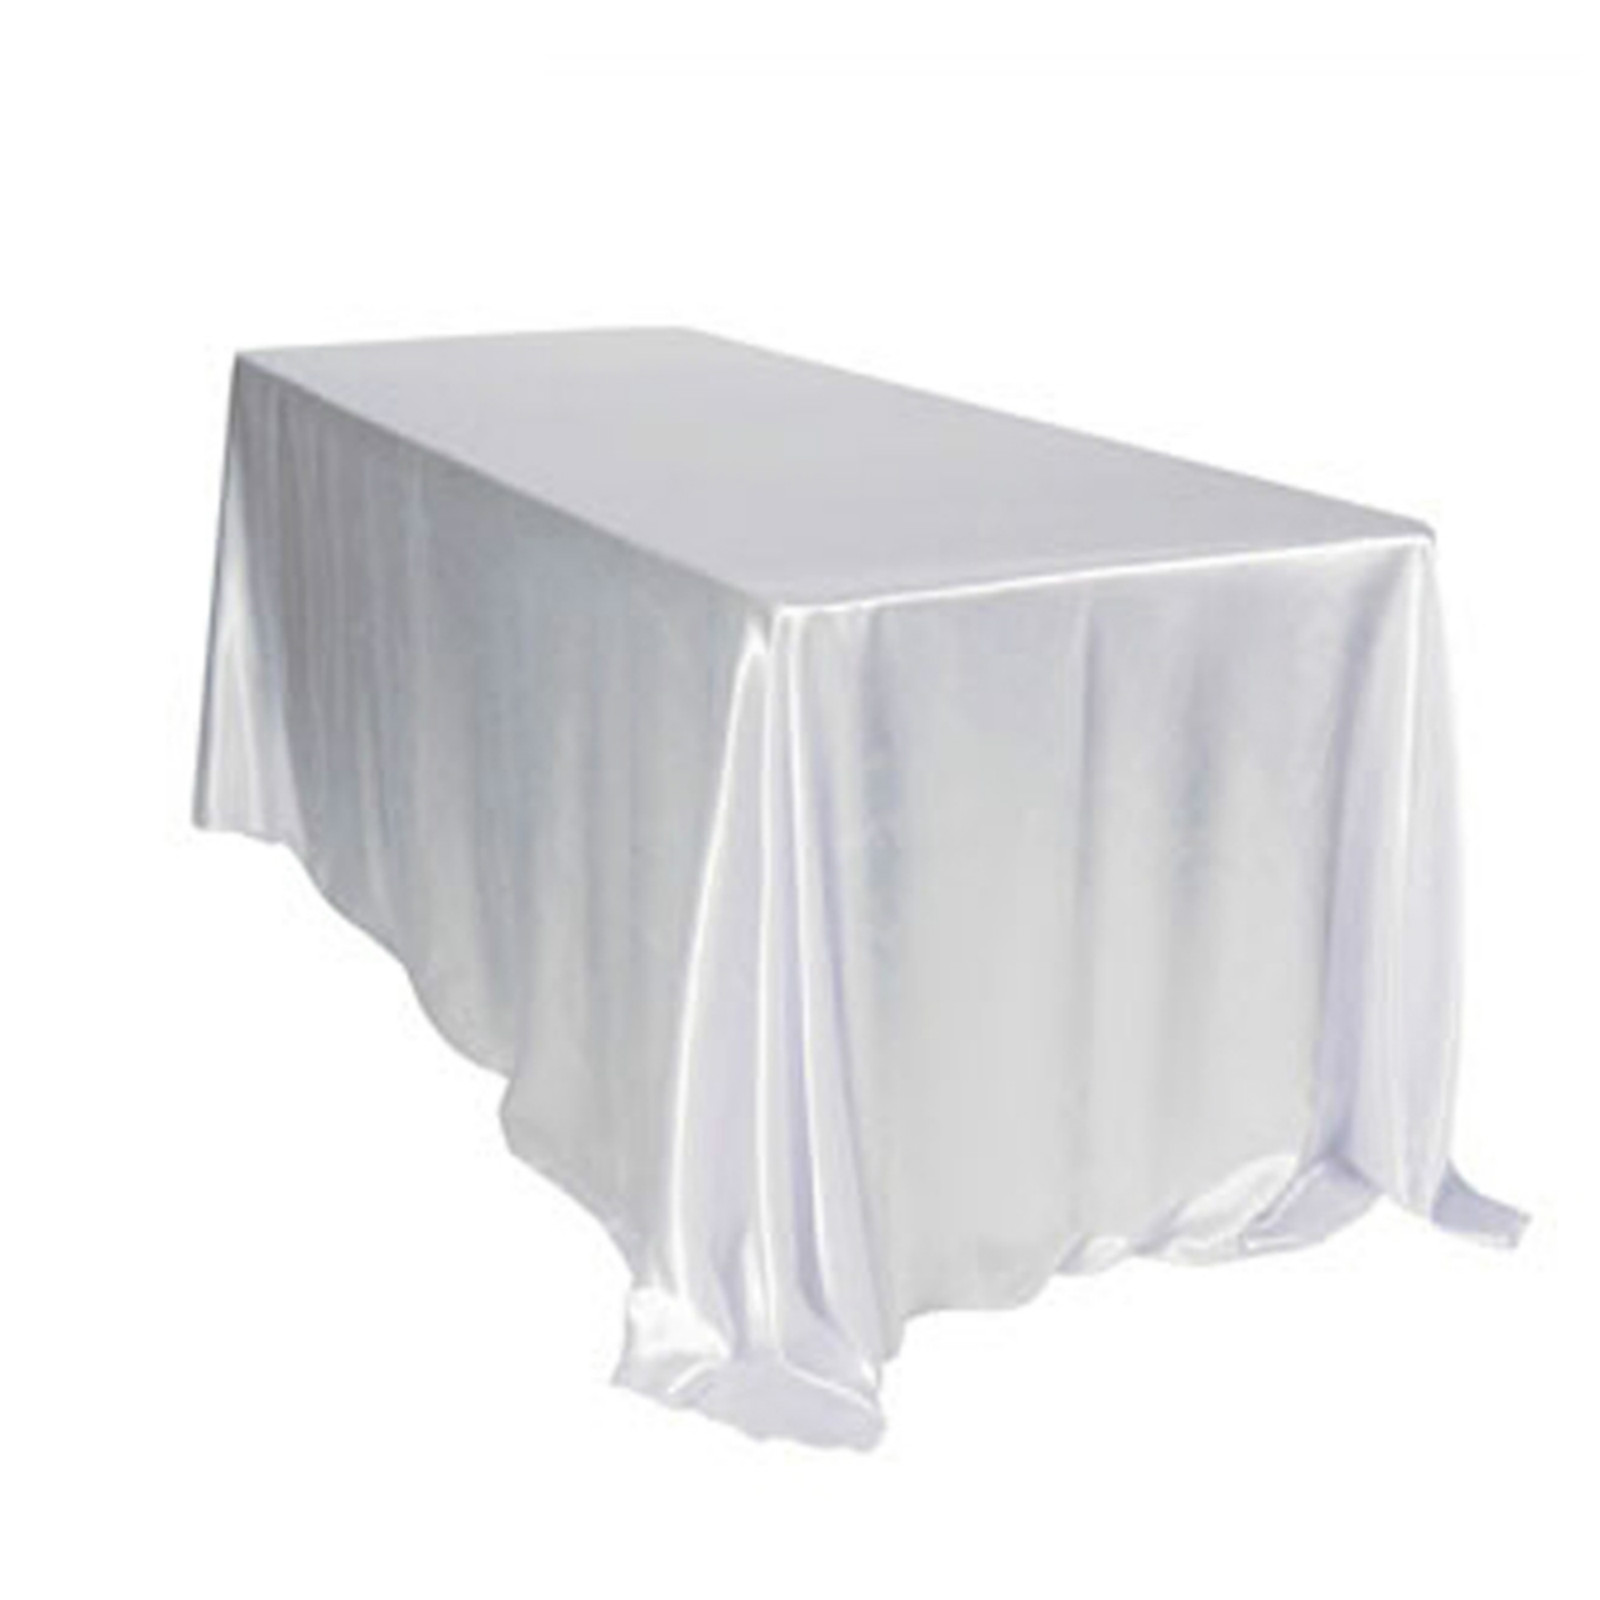 5pcs 228x335cm White Black Table Cloth Polyester Wedding Table Cloth Rectangular Satin Tablecloth for Wedding Party